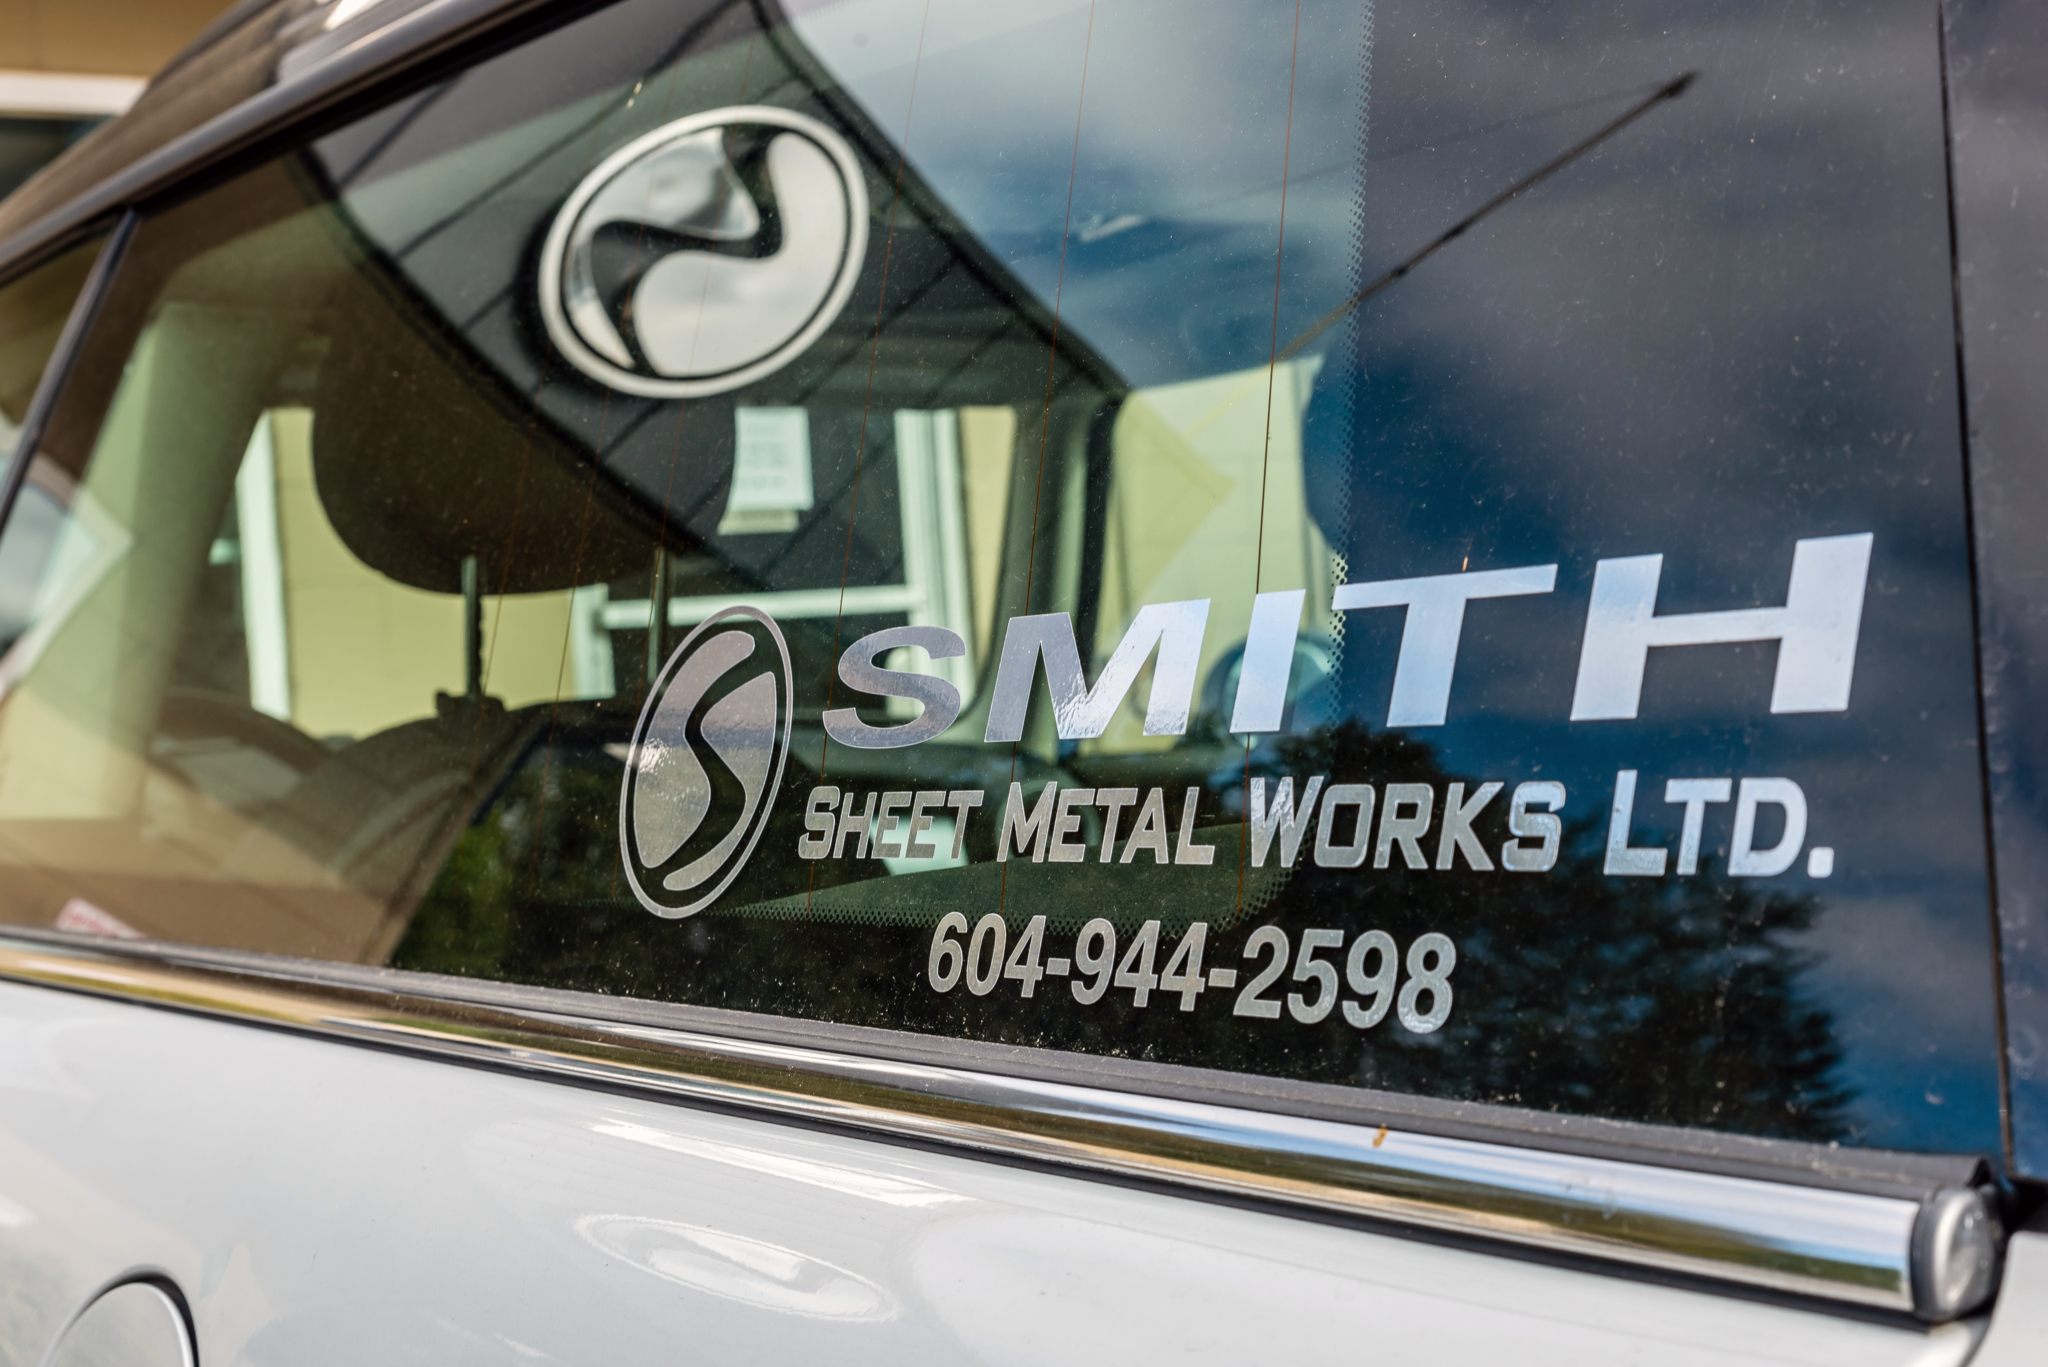 Smith Sheet Metal Works Ltd in Port Coquitlam